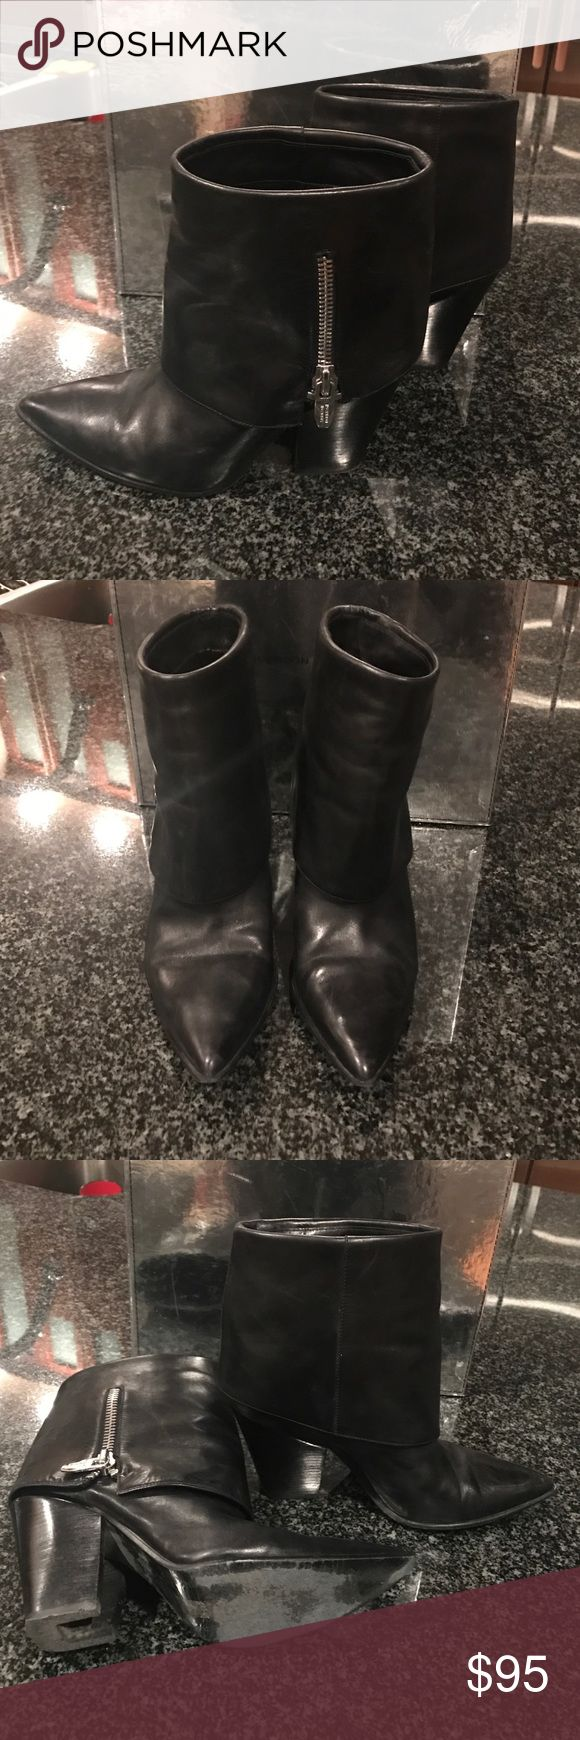 Sigerson Morrison black leather booties-9.5 Sigerson Morrison black leather fold down booties with silver zippers. Size 9.5 Sigerson Morrison Shoes Ankle Boots & Booties